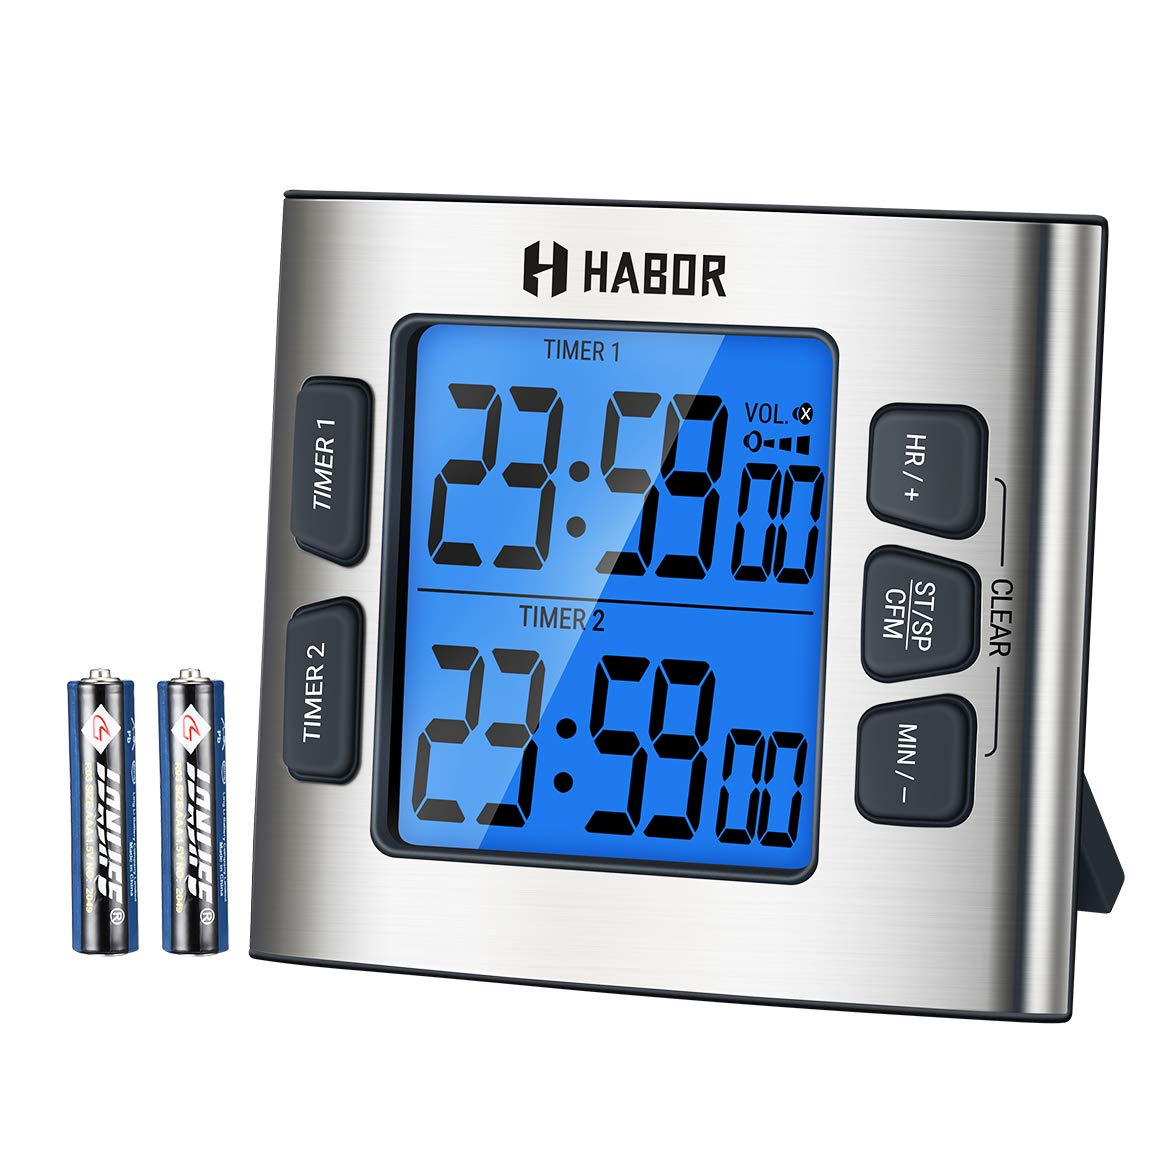 Habor Kitchen Timer, Cooking Dual Timer with Calendar Clock, 4-Level Adjustable Alarm Volume, Larger Backlit Display, Stronger Magnets, Count-up & Countdown for Cooking etc (Battery Included)